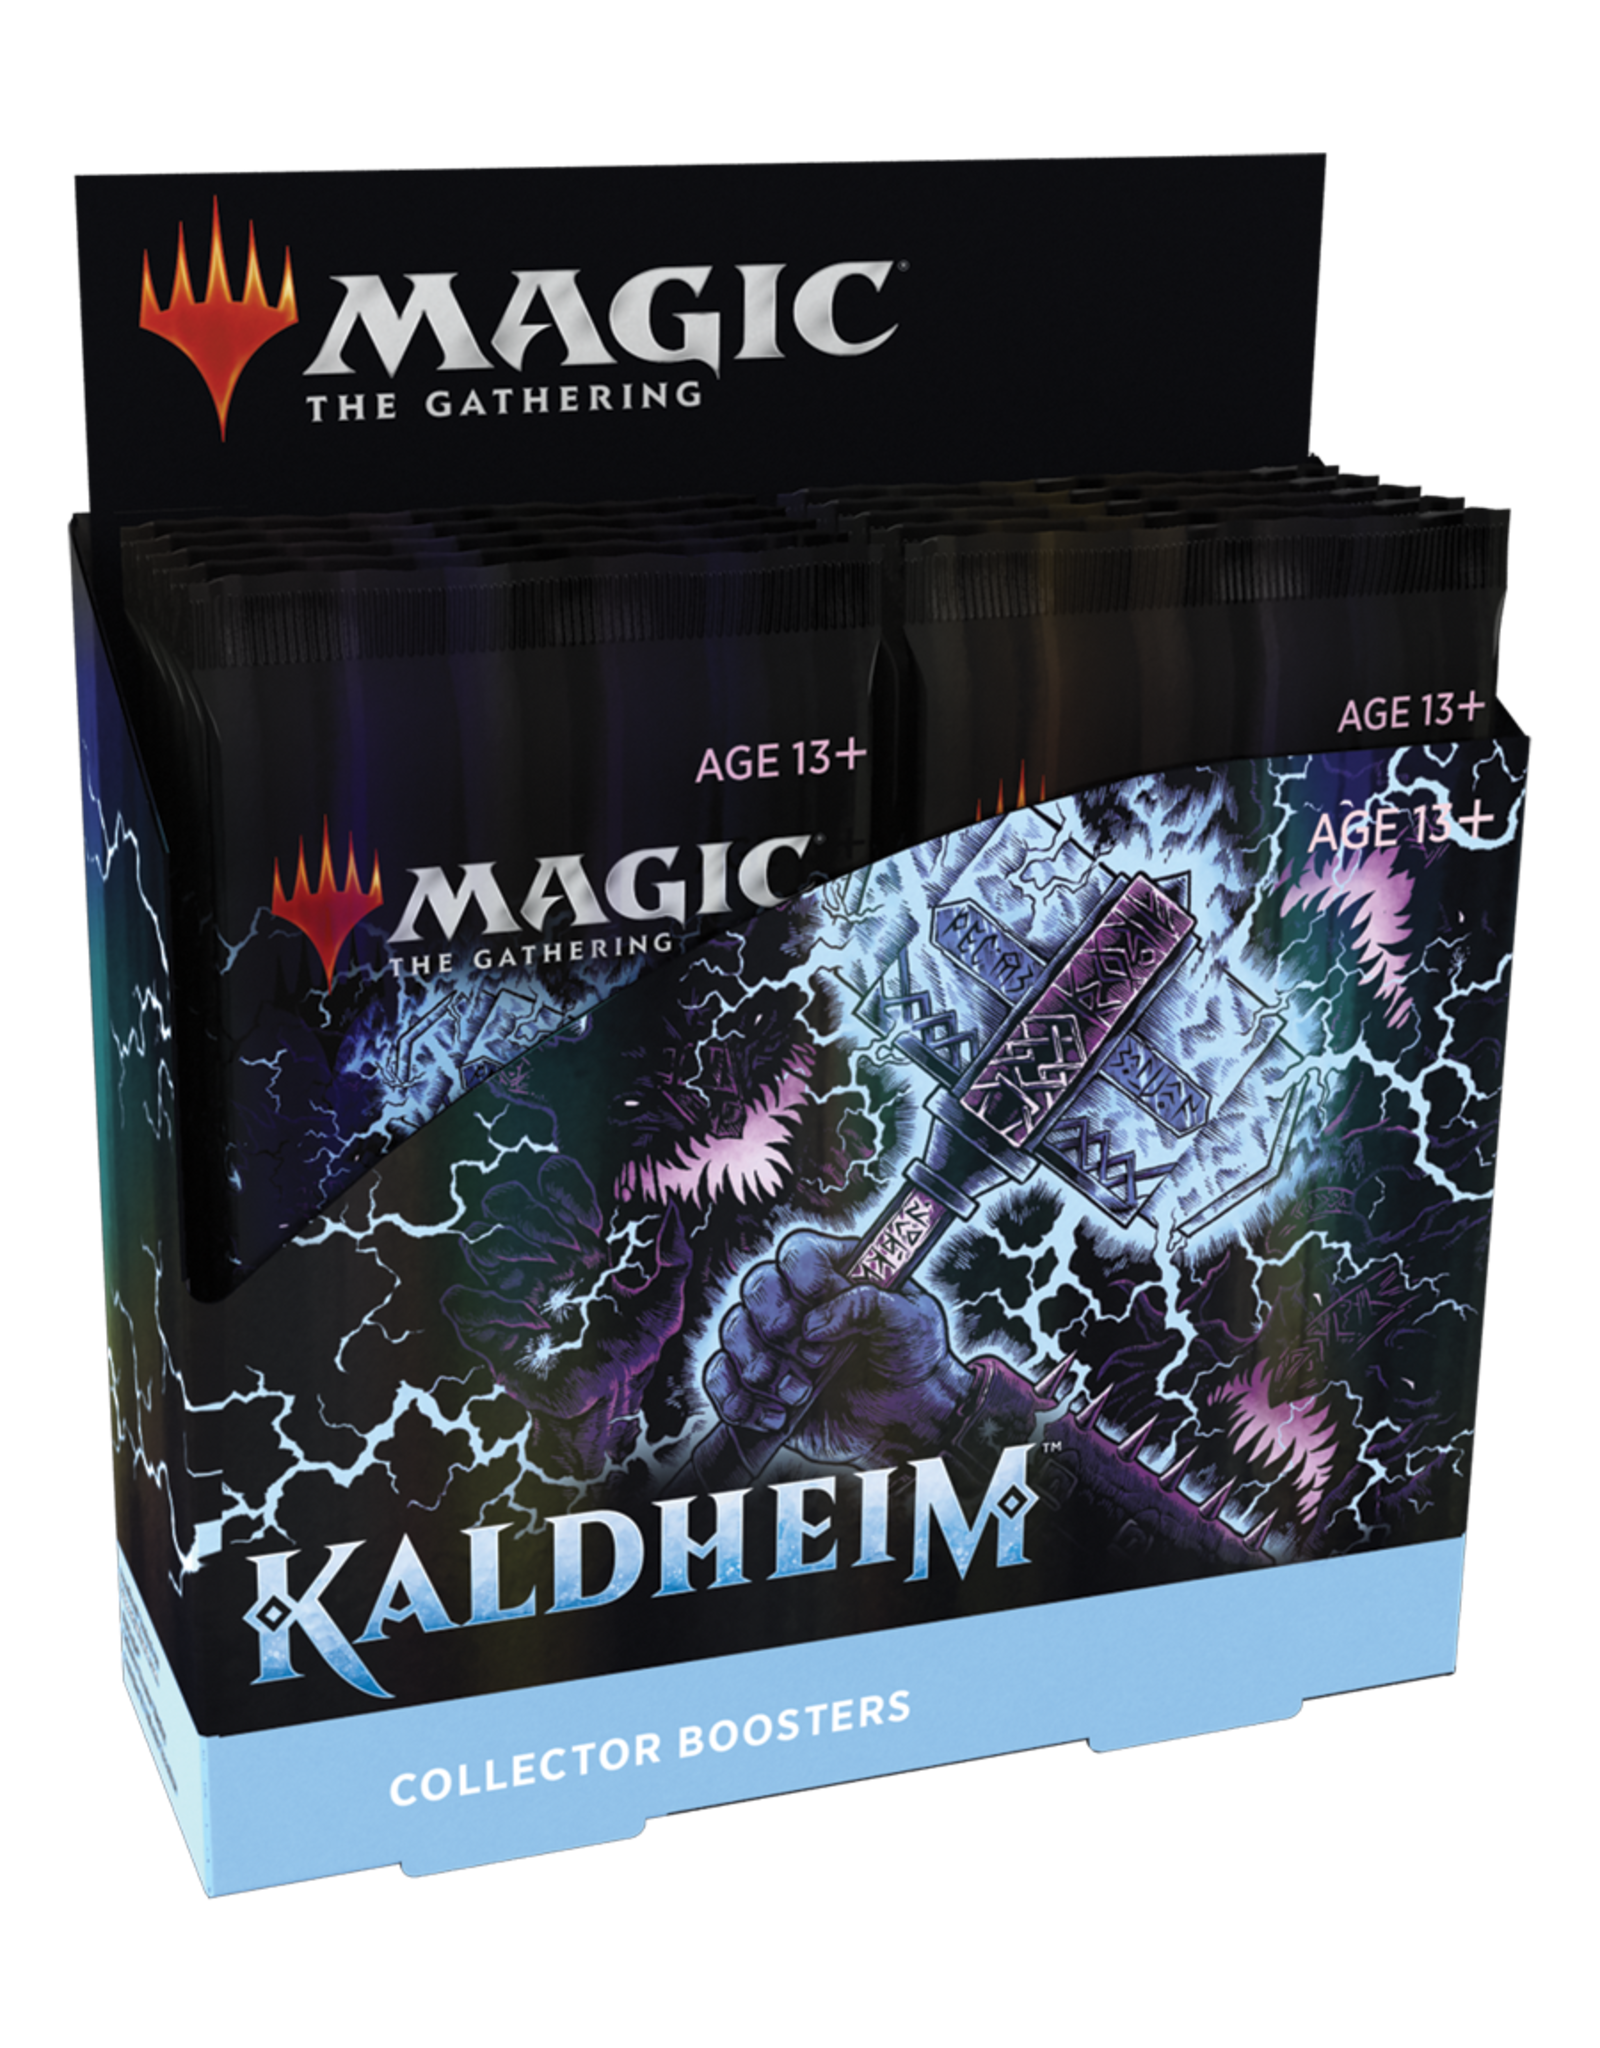 Wizards of the Coast MTG KALDHEIM COLLECTOR BOOSTER BOX *DATE DE SORTIE 5 FÉVRIER*